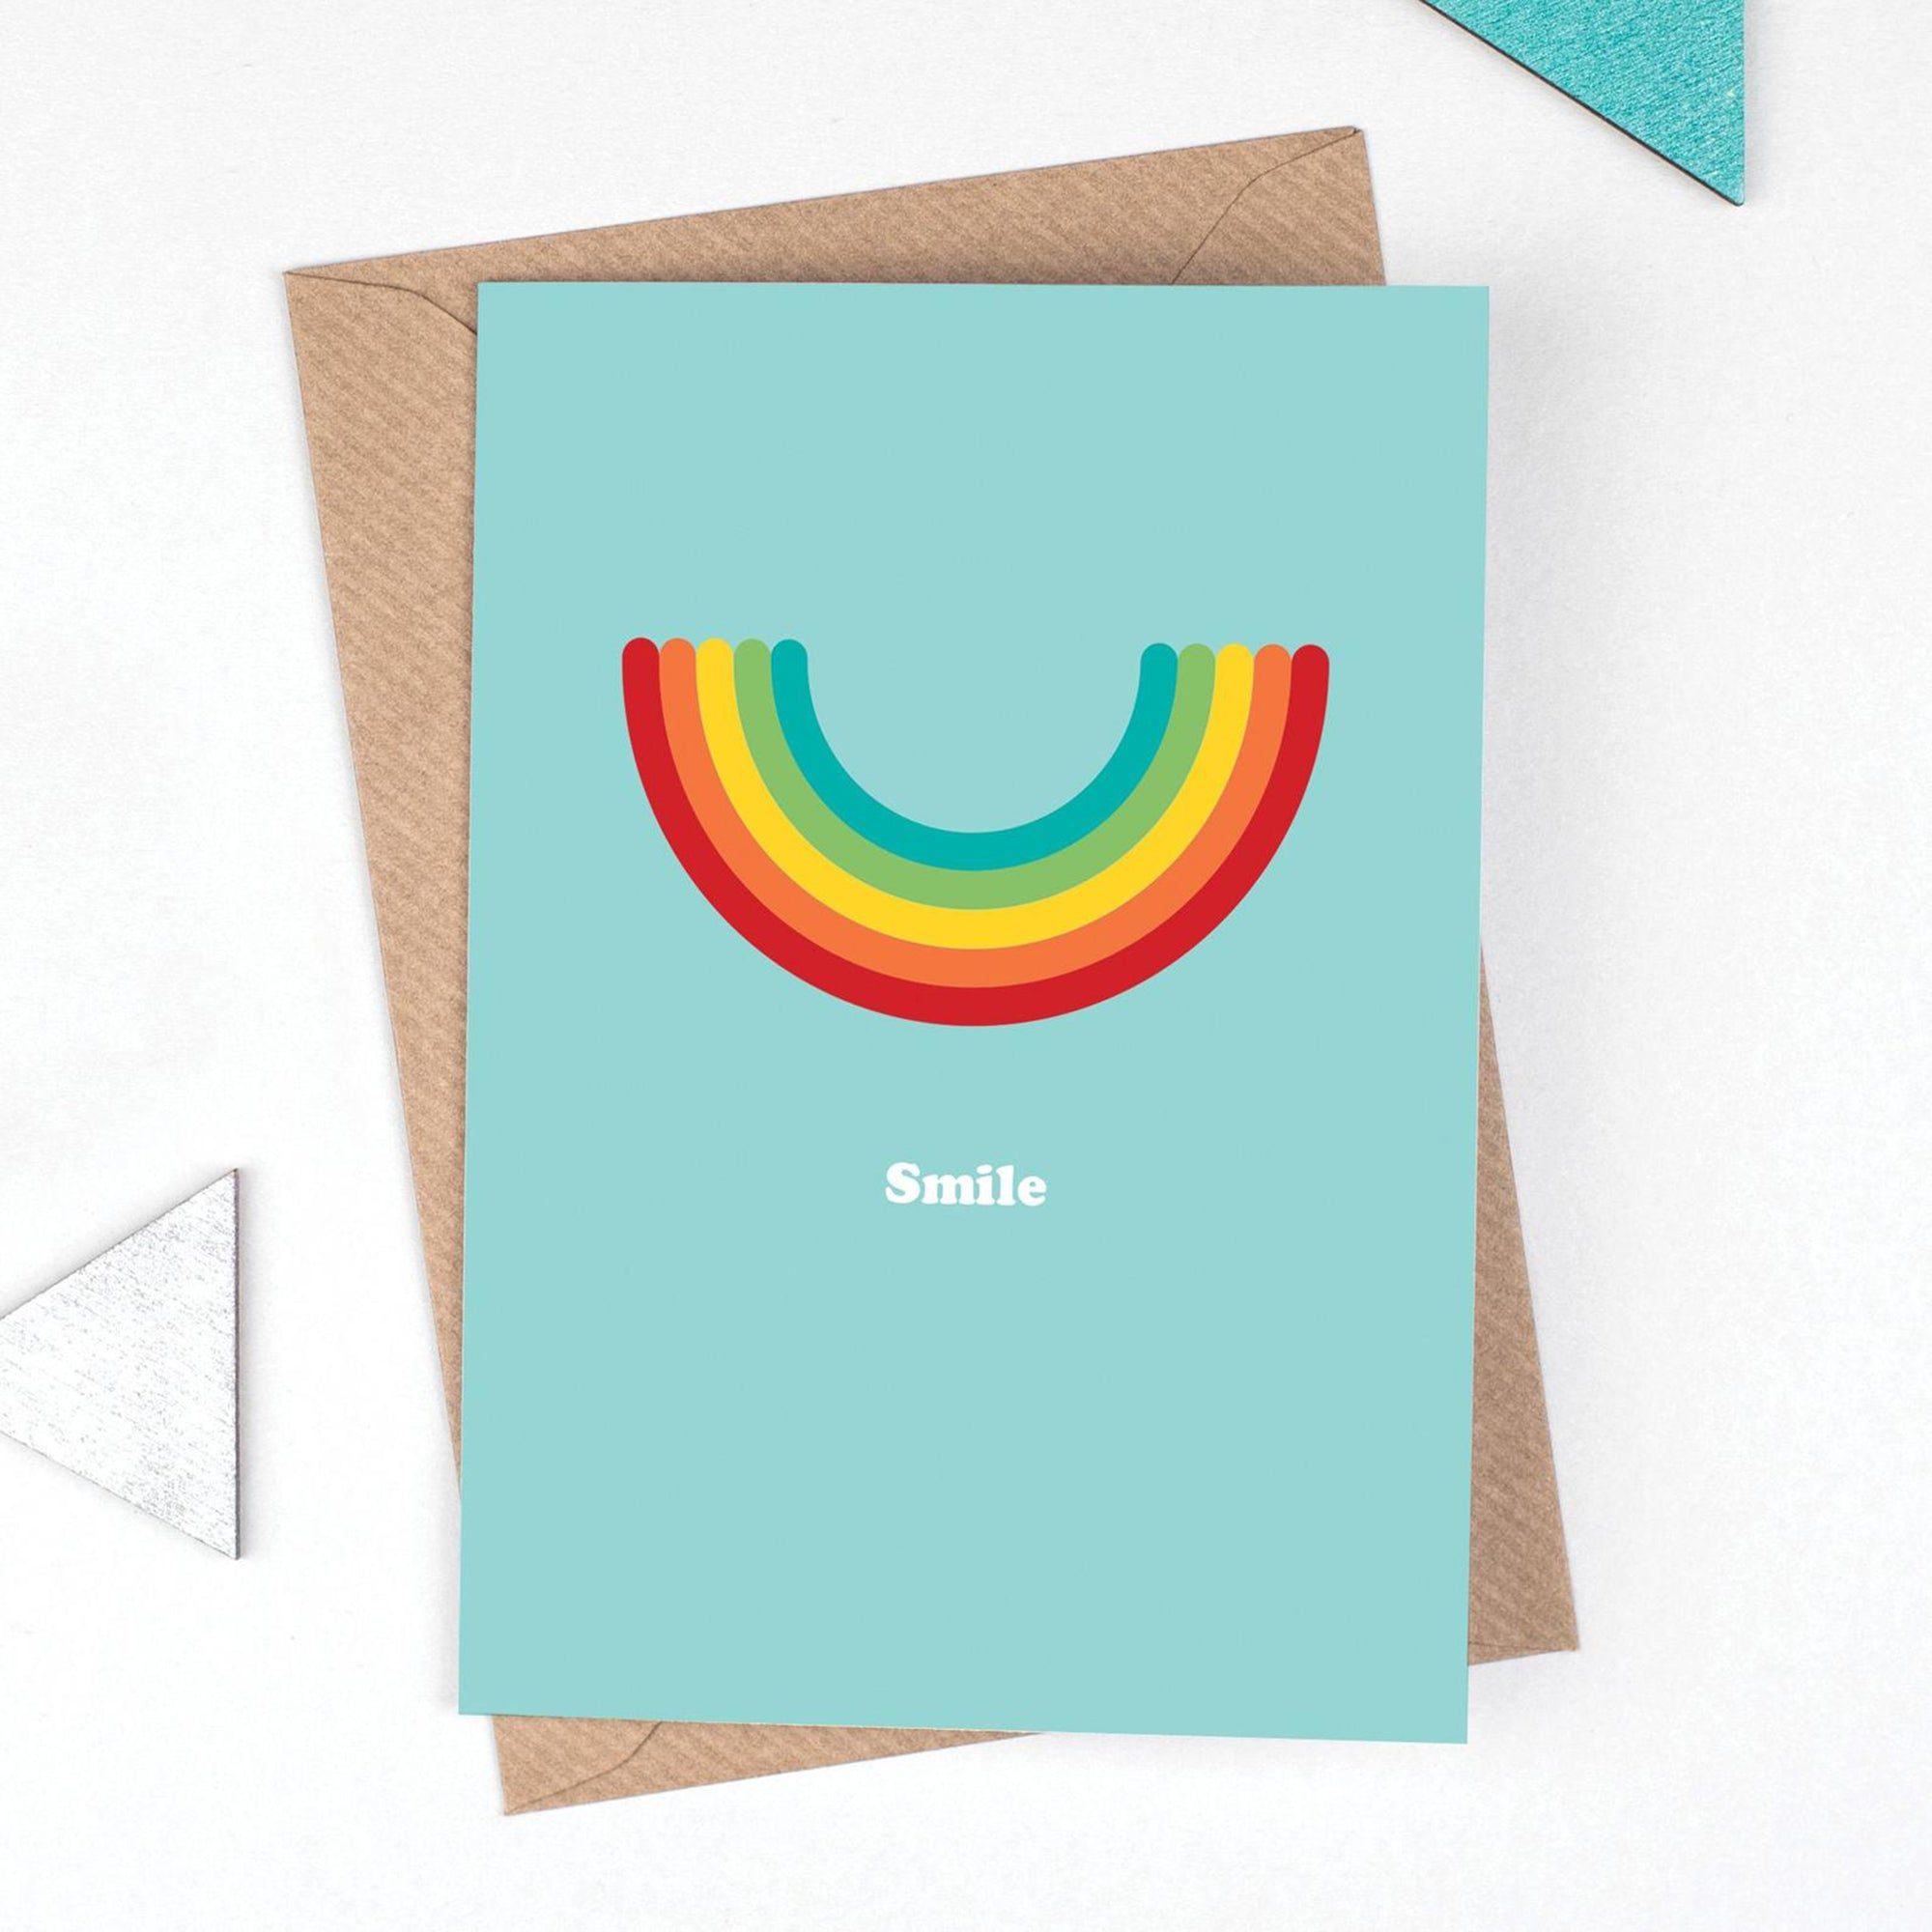 Smile greetings card - Inspired